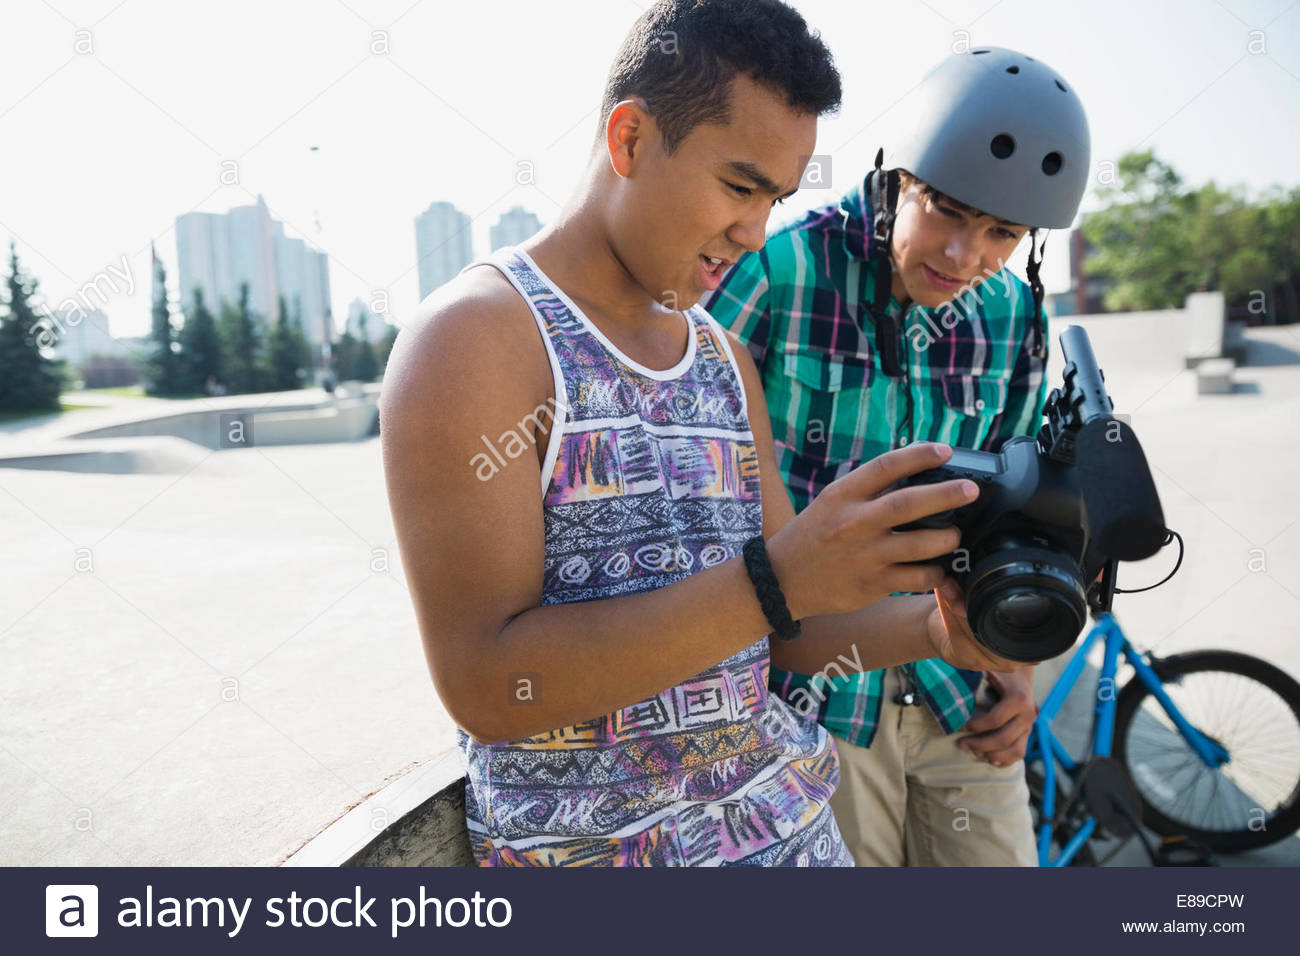 Teenage boys with camera at skateboard park - Stock Image